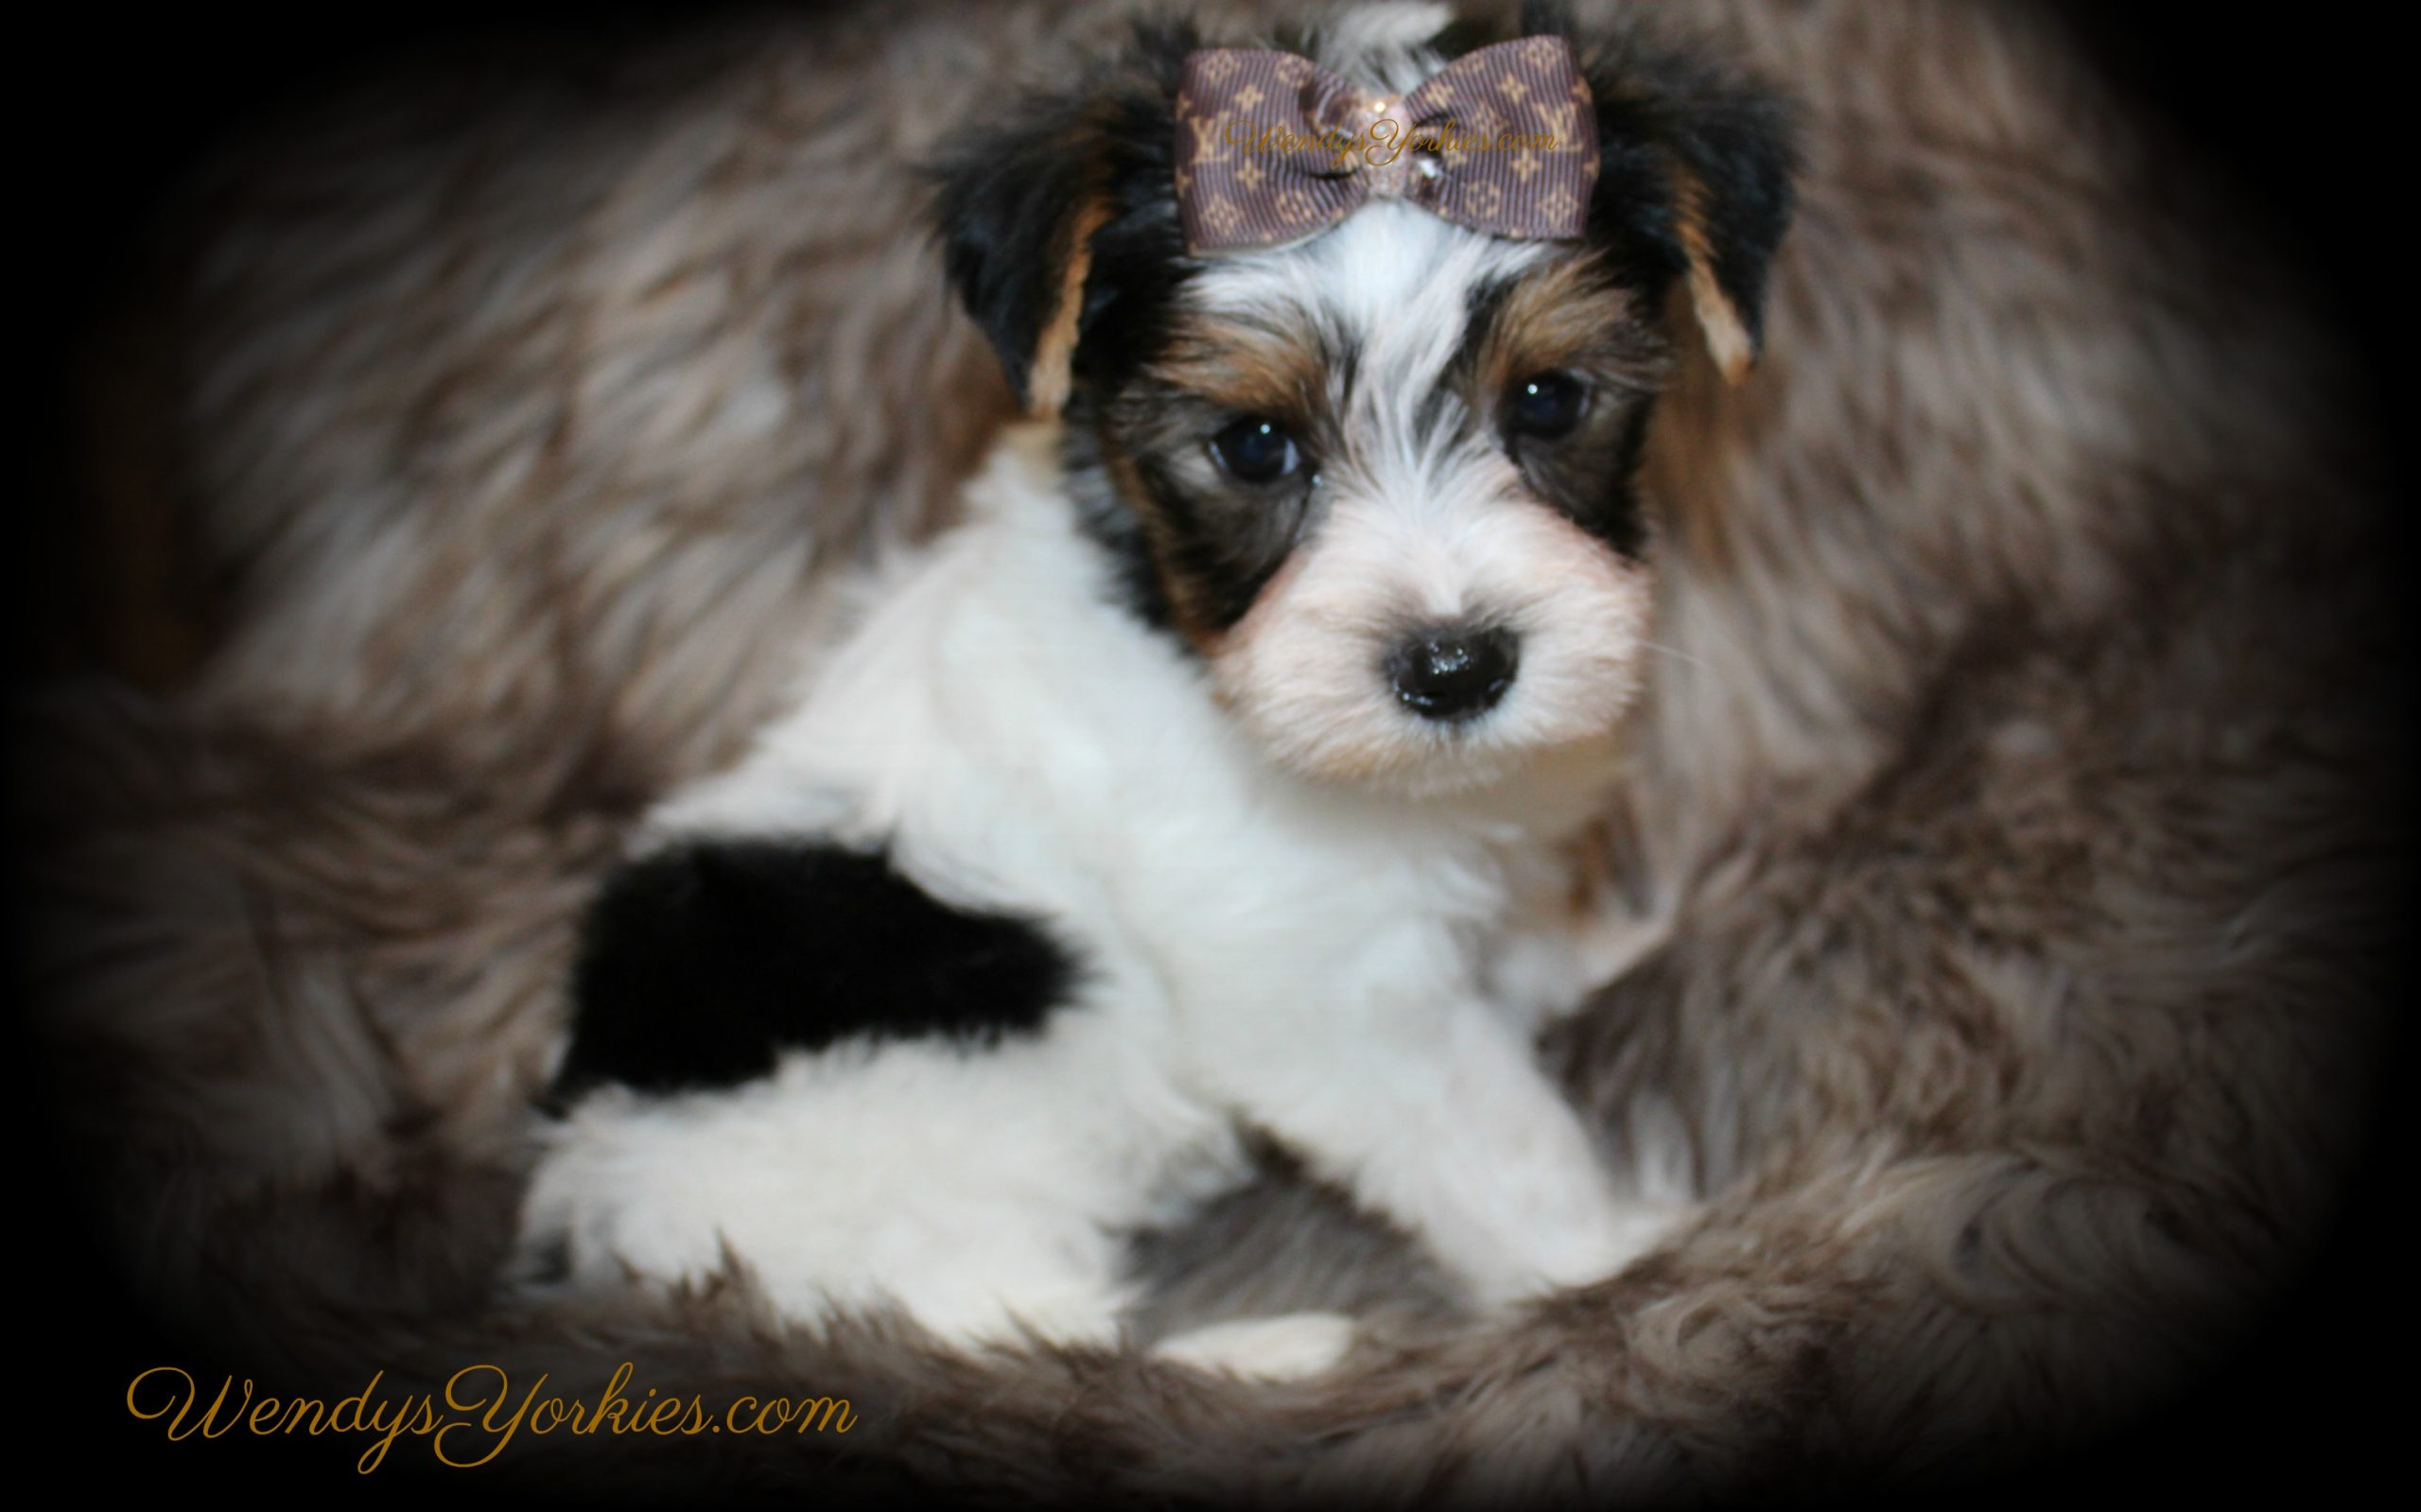 Male Parti Yorkie puppy fro sale in Texas, Sugar pm3, WendysYorkies.com